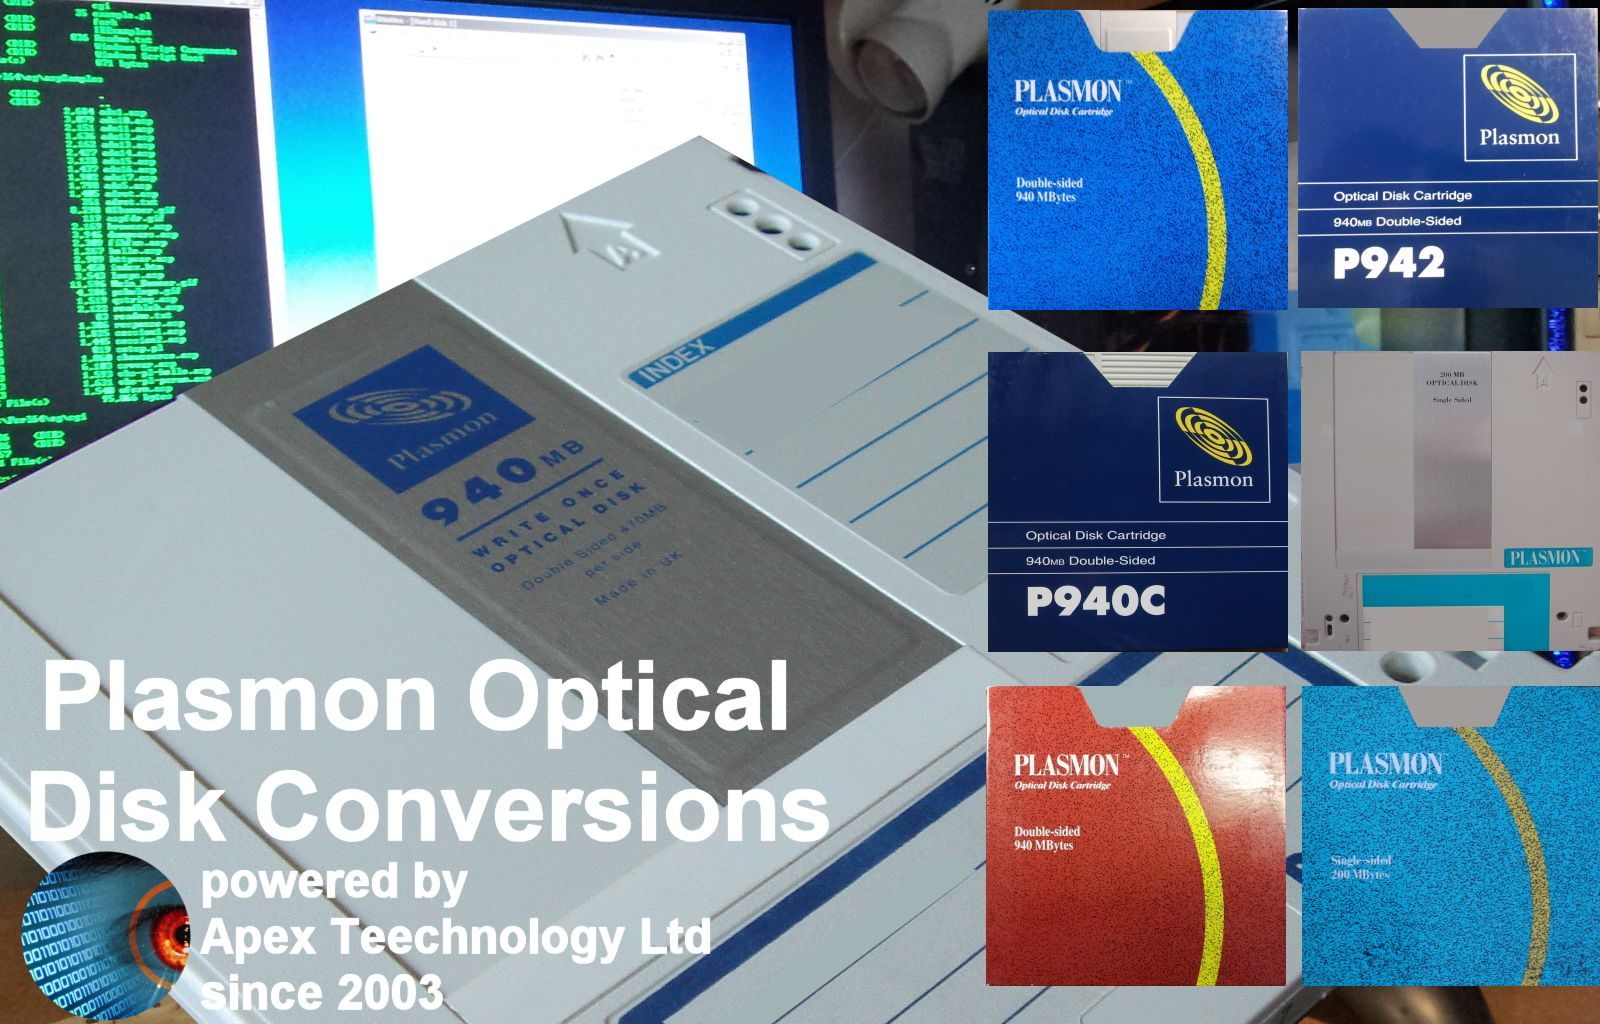 Plasmon Optical Disk Cartridges File Transfer, Data Recovery and Conversions